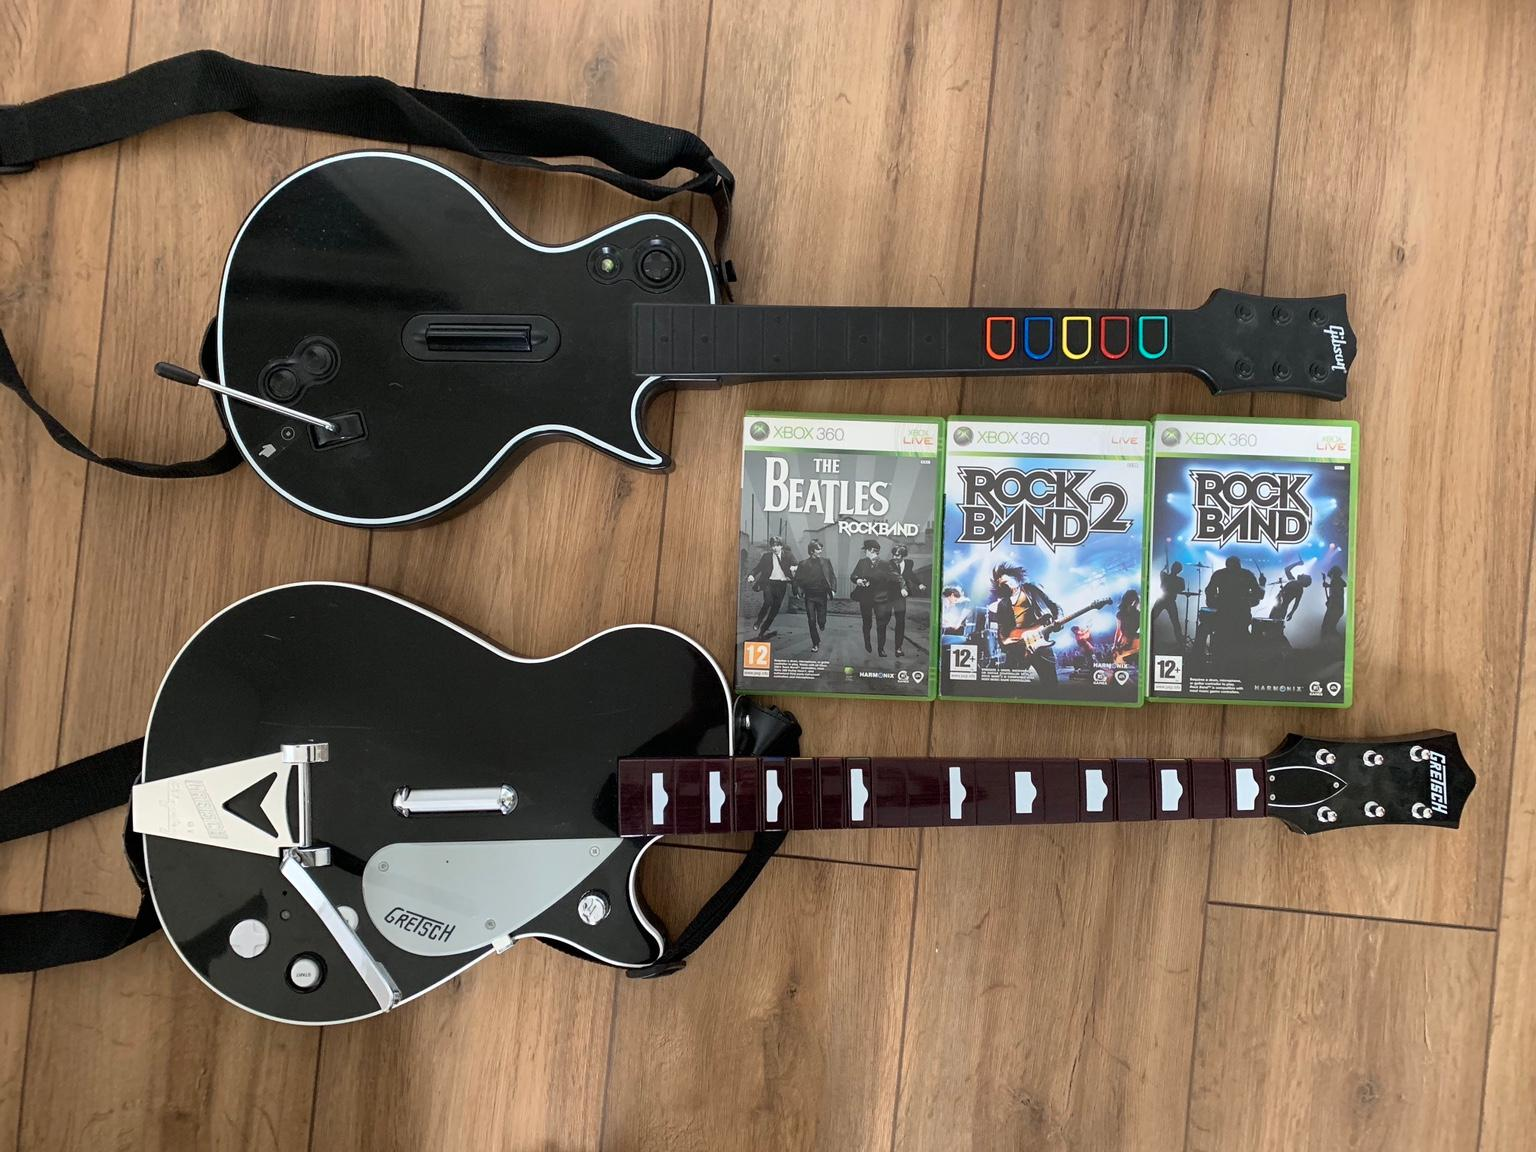 2 Xbox 360 Guitars and Rockband Games